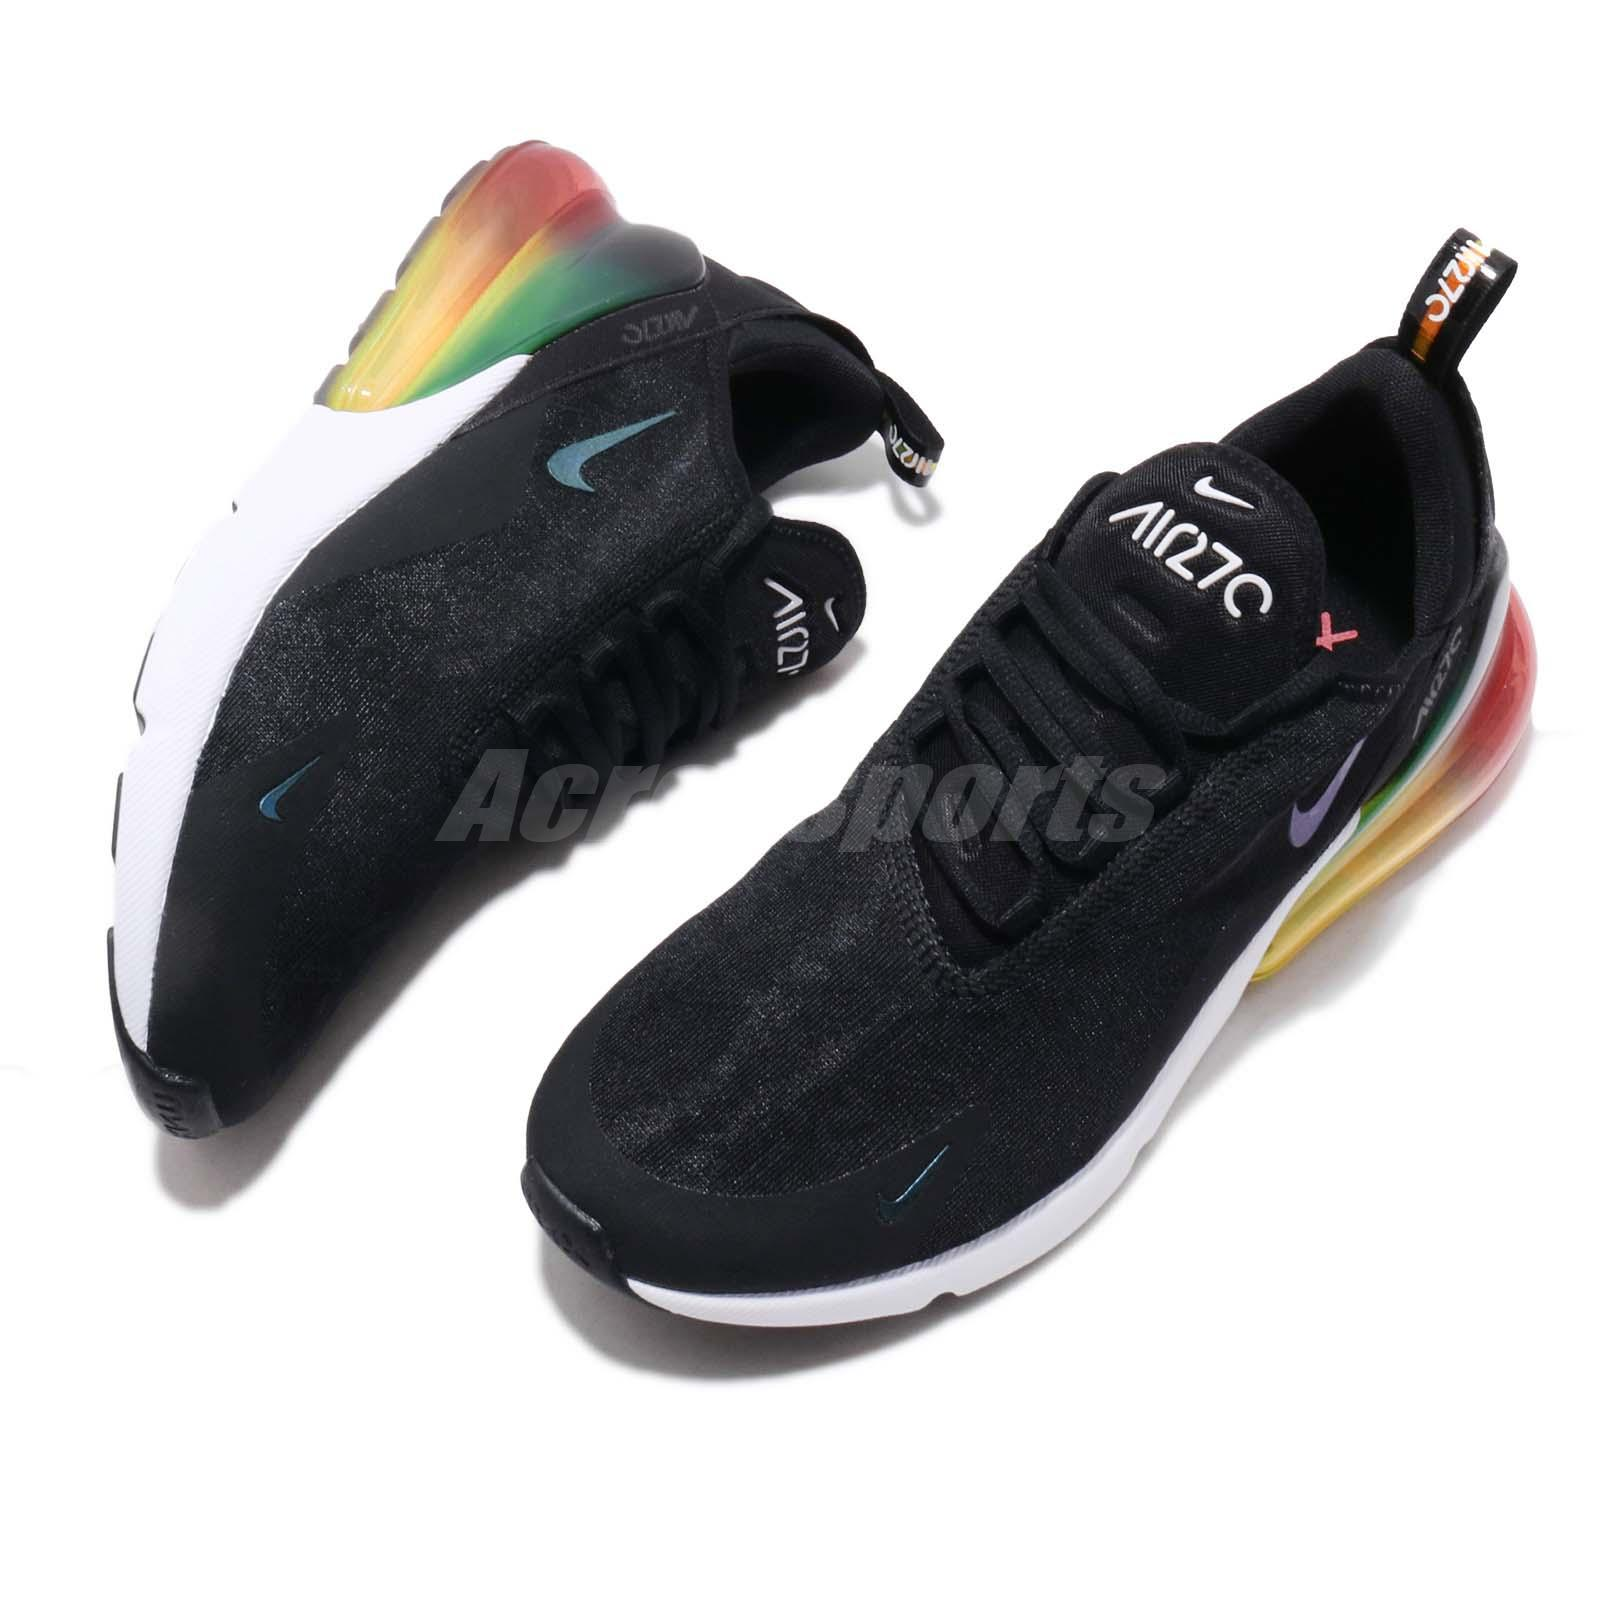 new styles d45d2 4c4dd Sports, vacances Nike Air Max 270 SE Black Laser Orange Gradient Mens  Running Shoes AQ9164-003 ...